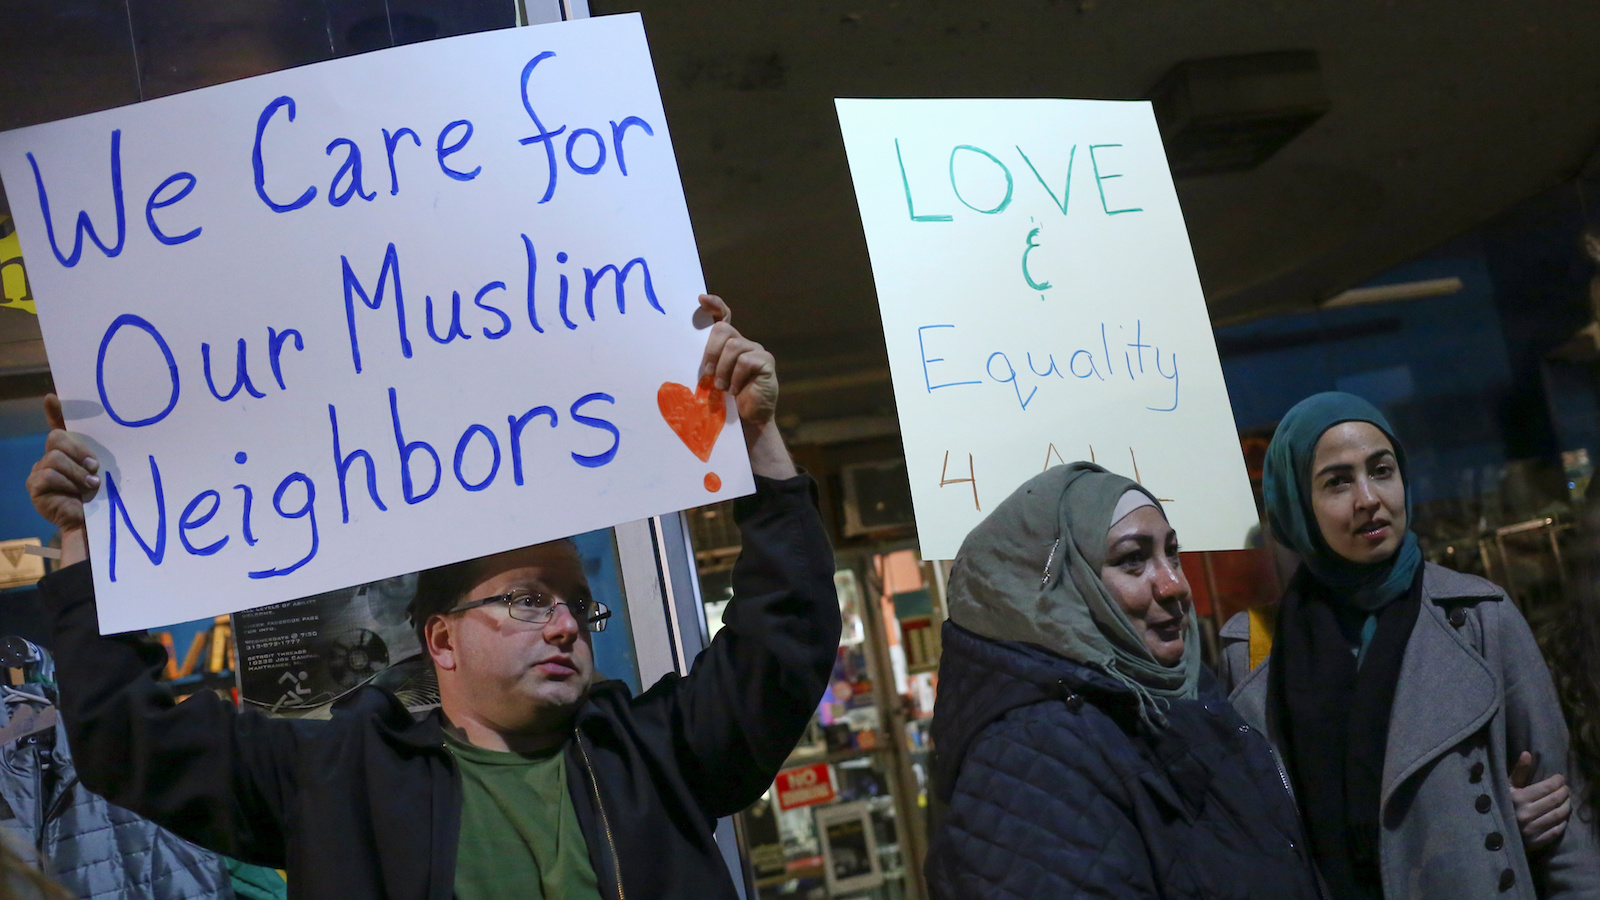 Demonstrators hold signs during a protest against President-elect Donald Trump and in support of Muslims residents in downtown Hamtramck, Michigan, U.S. on November 14, 2016.    REUTERS/Brittany Greeson - RTX2TOIU